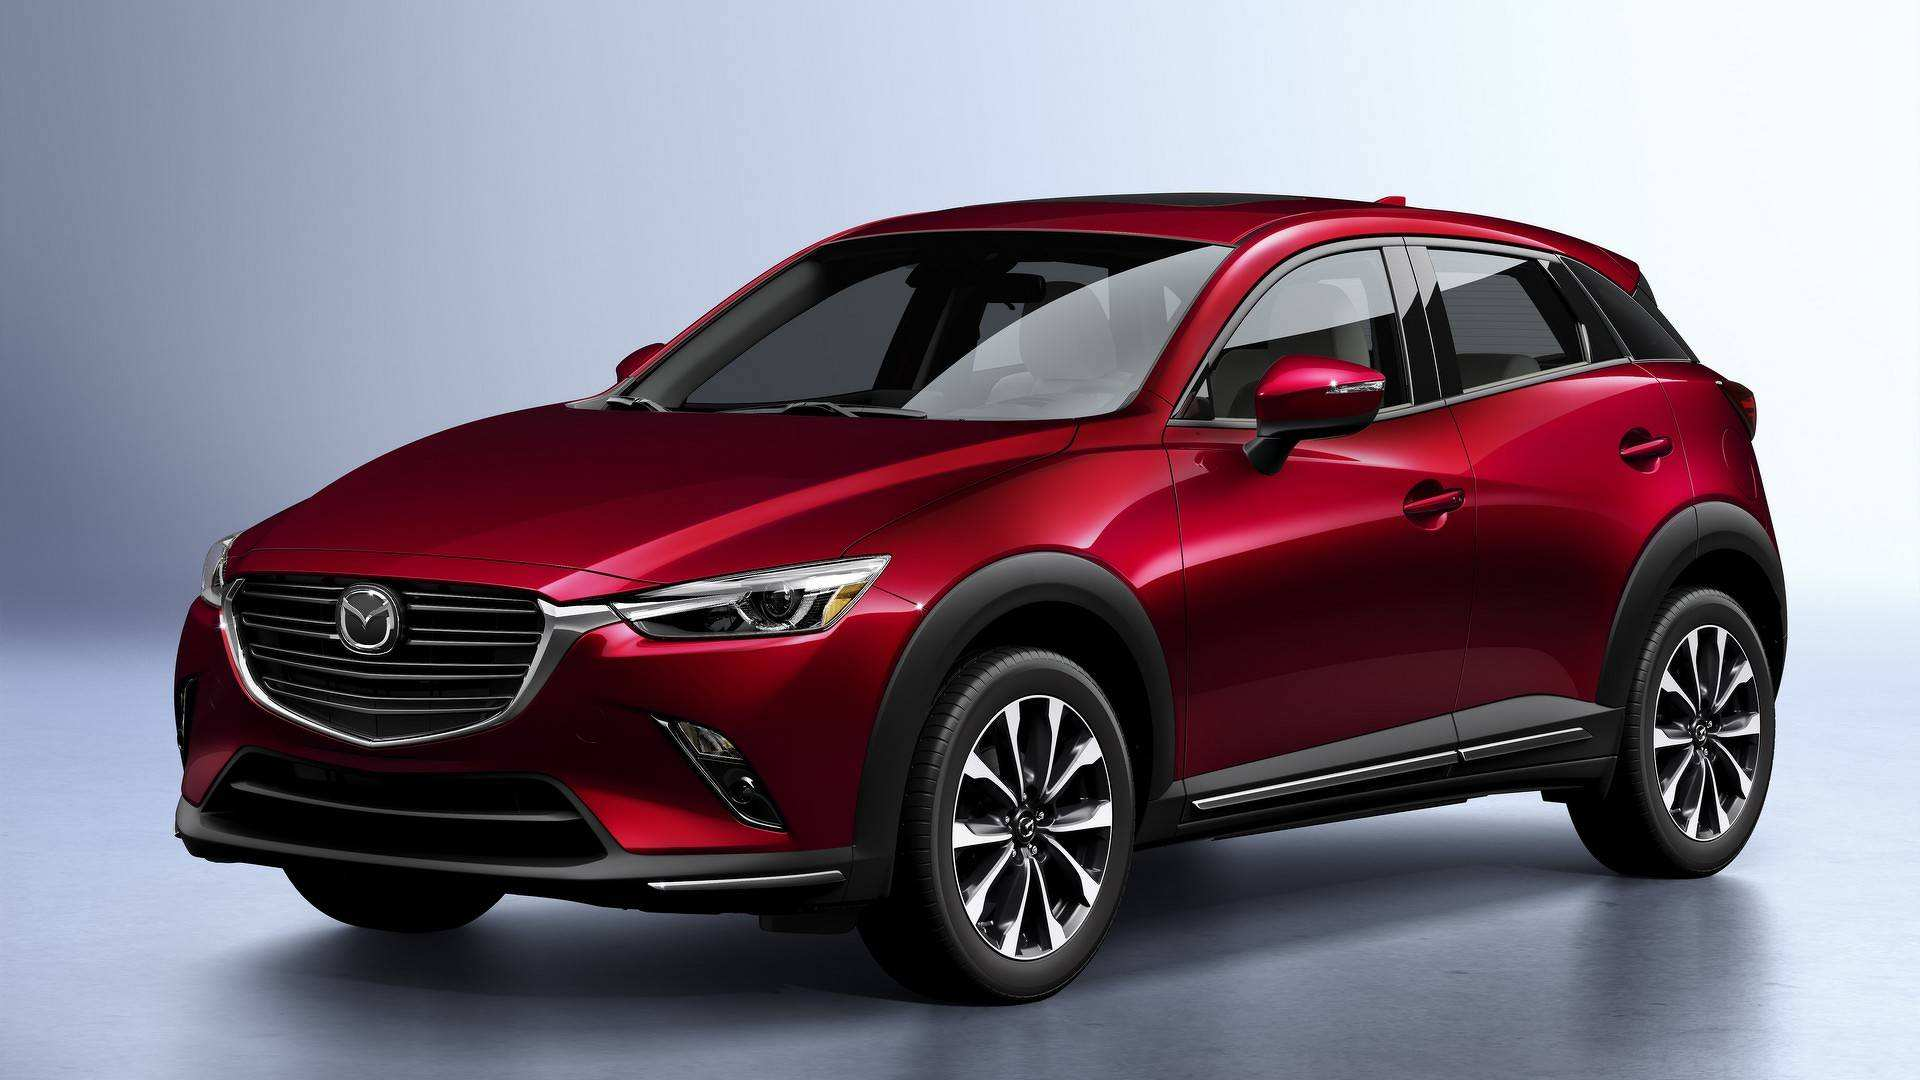 62 Great Mazda Cx 3 2020 Model Prices with Mazda Cx 3 2020 Model